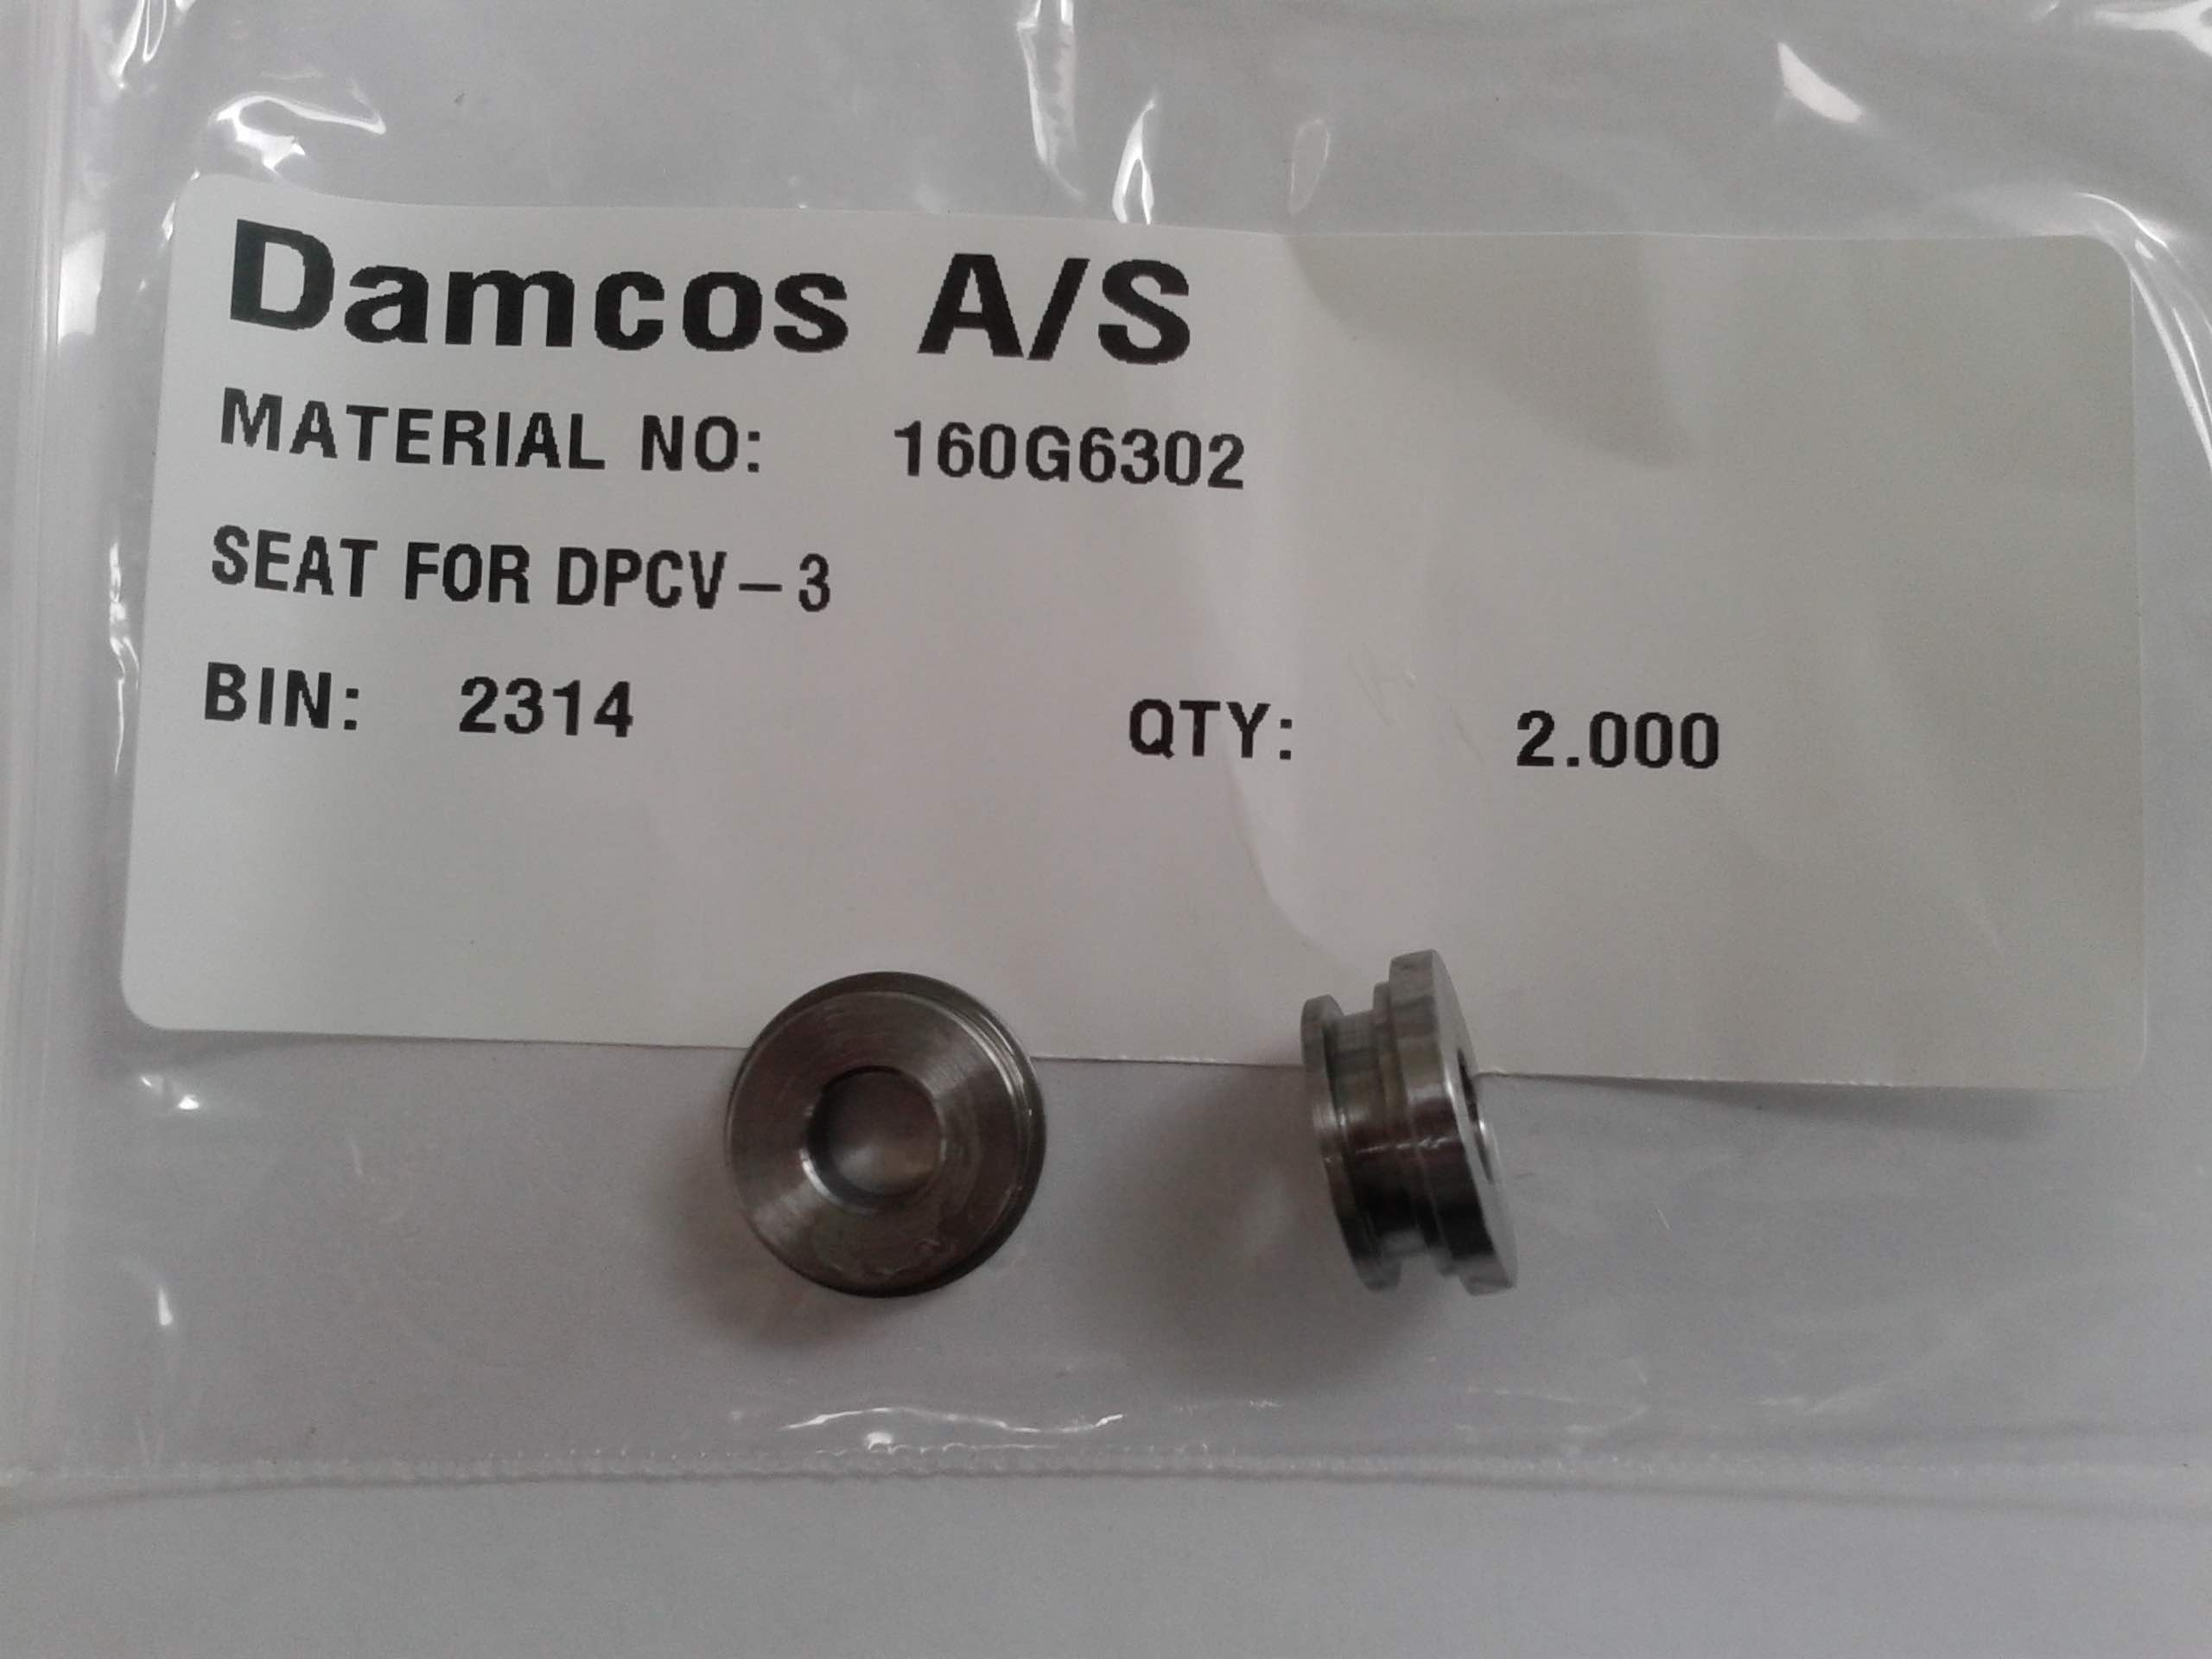 Damcos: Danfoss DPCV-3 Seat, Part No- 160G6302